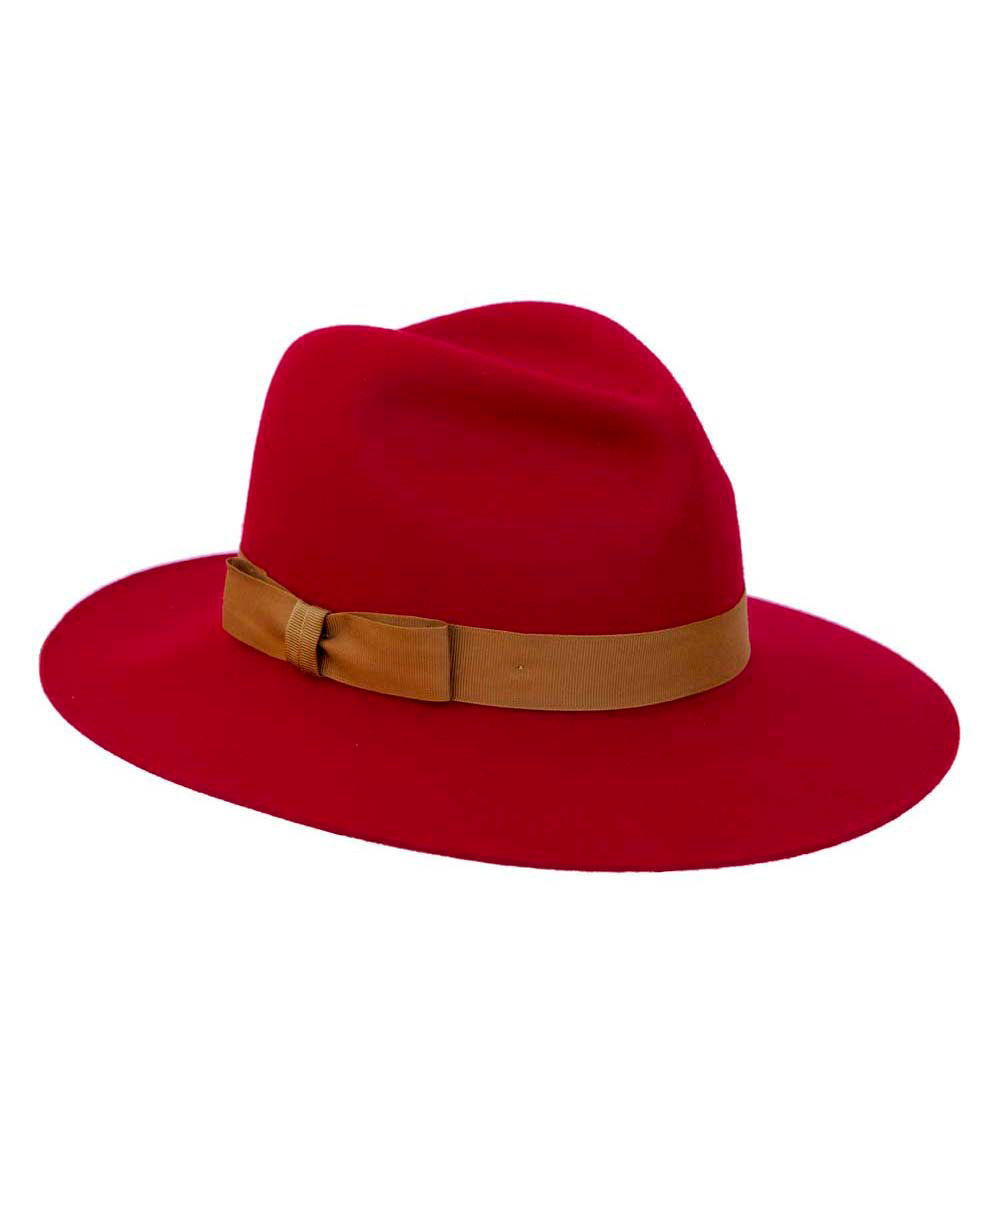 Fur Felt Goodwood Grayson Ladies Hat in Bright Red